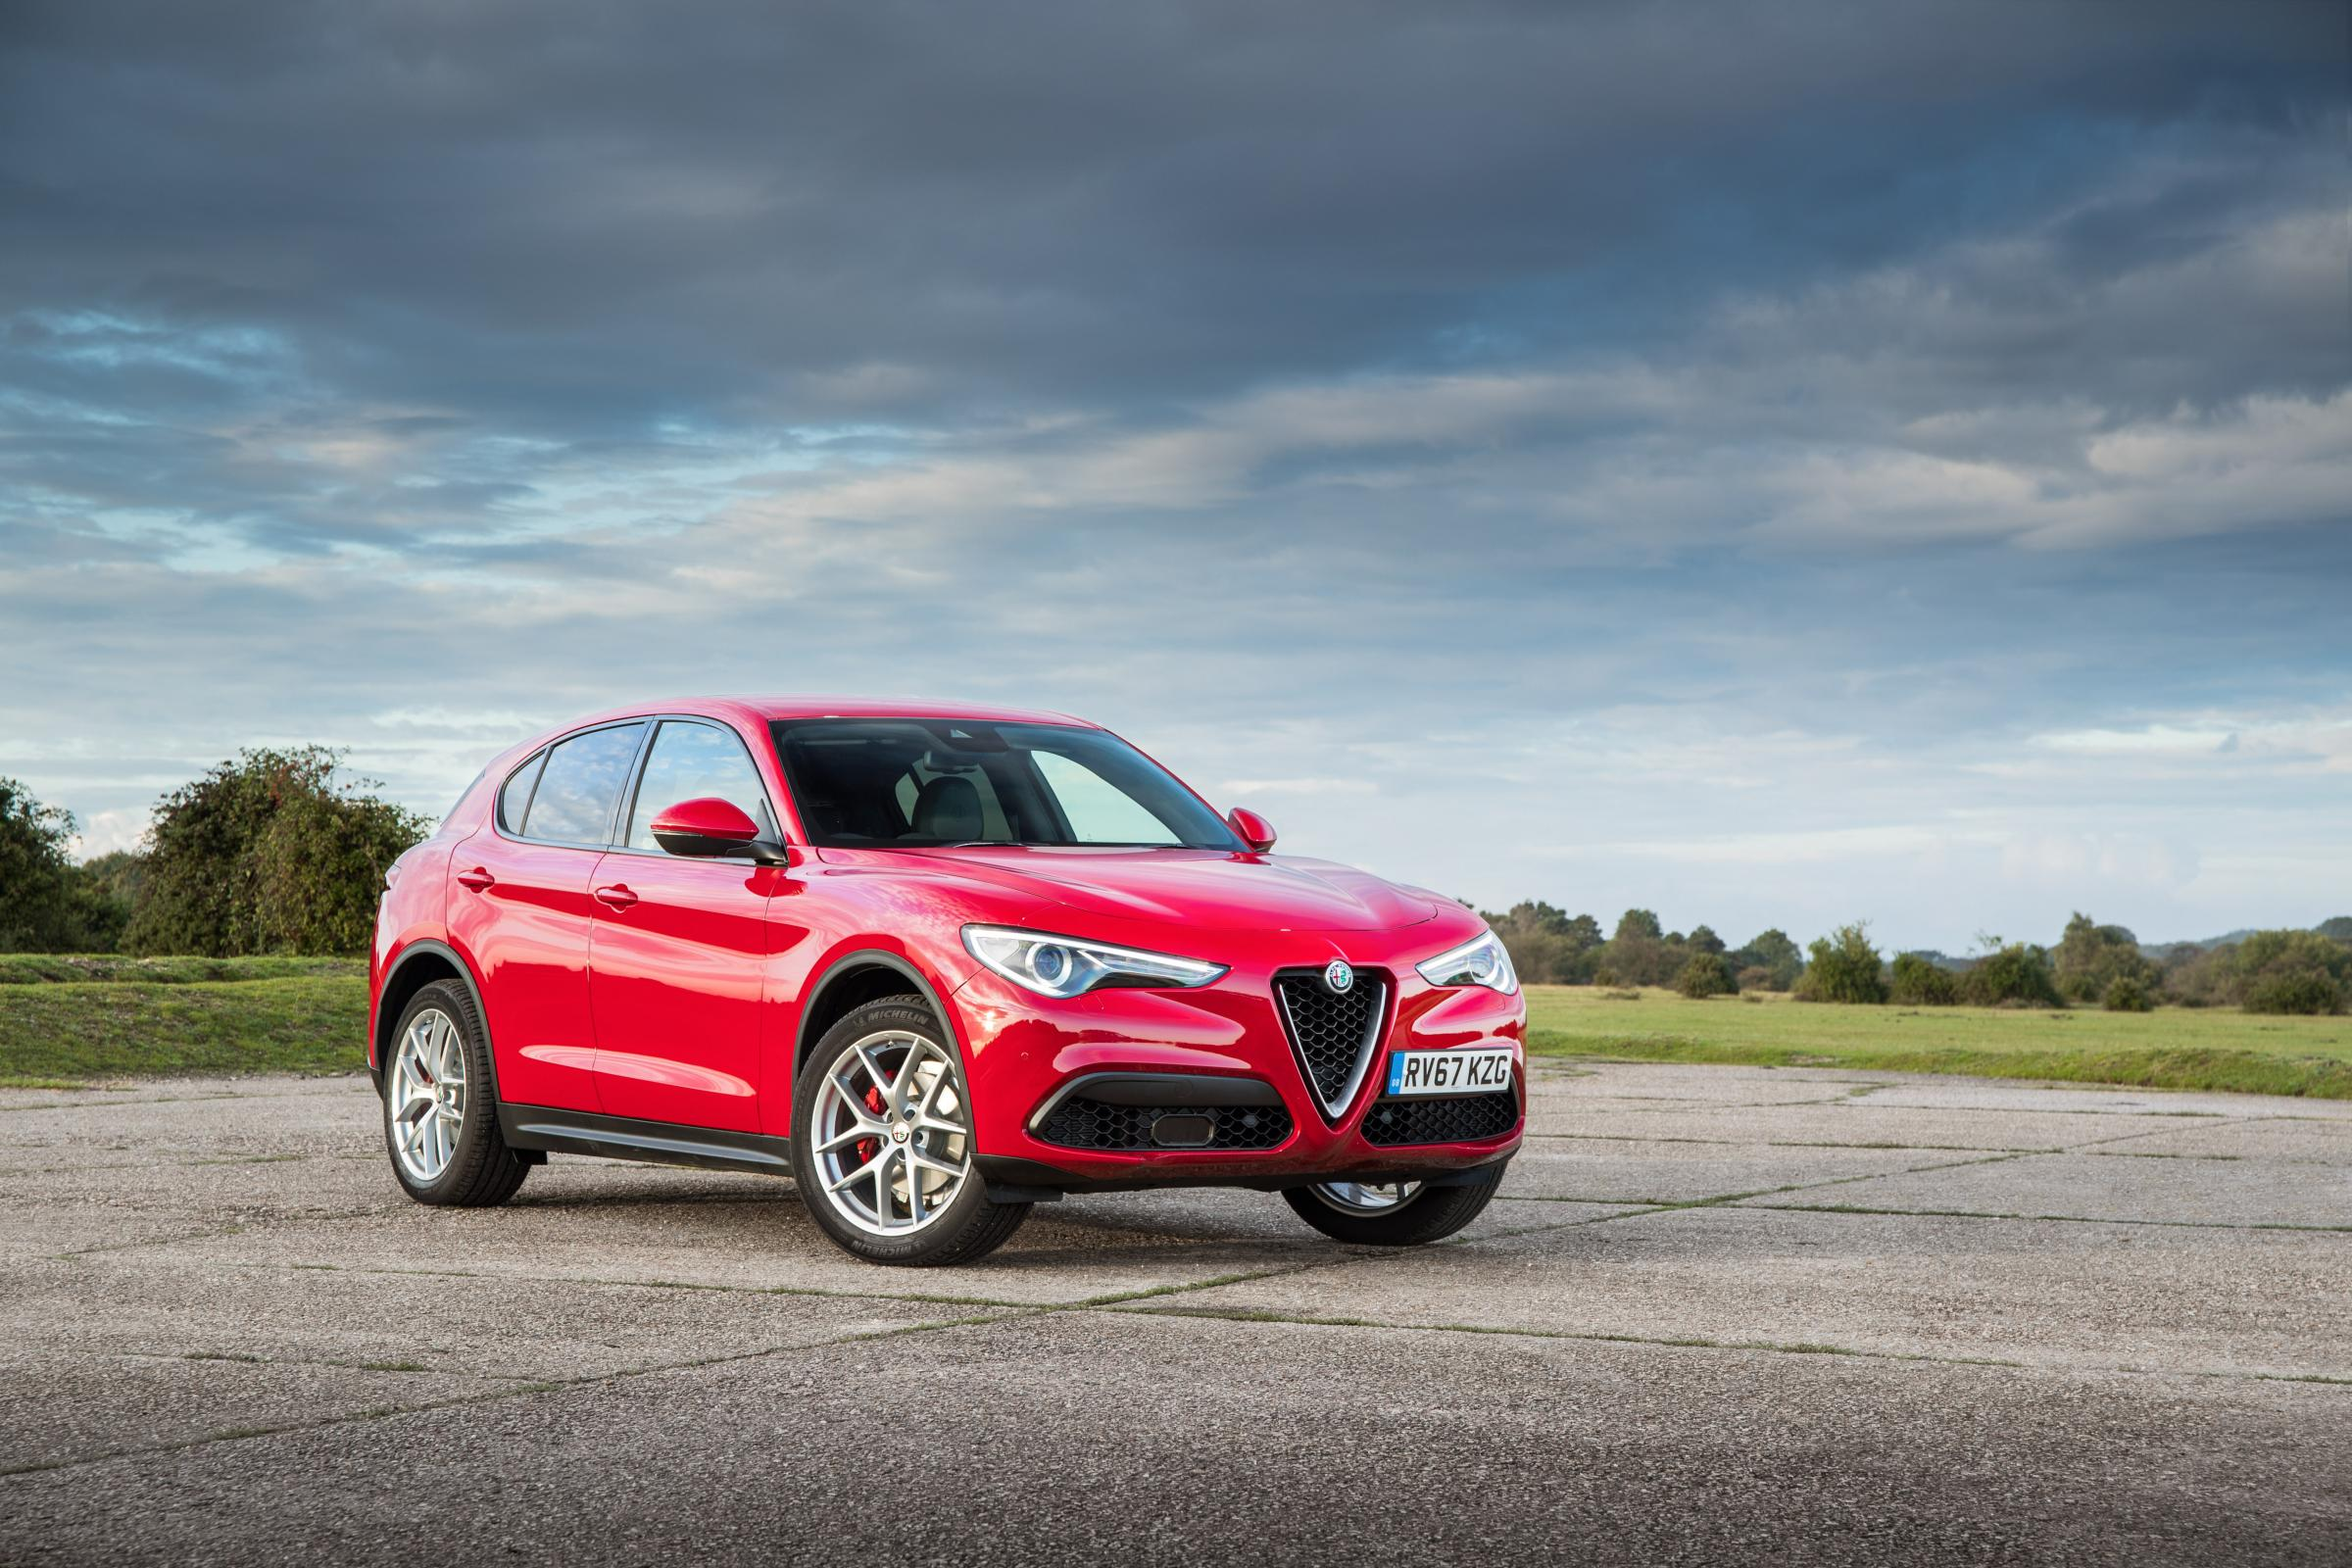 The Alfa Romeo Stelvio is the marque's first SUV